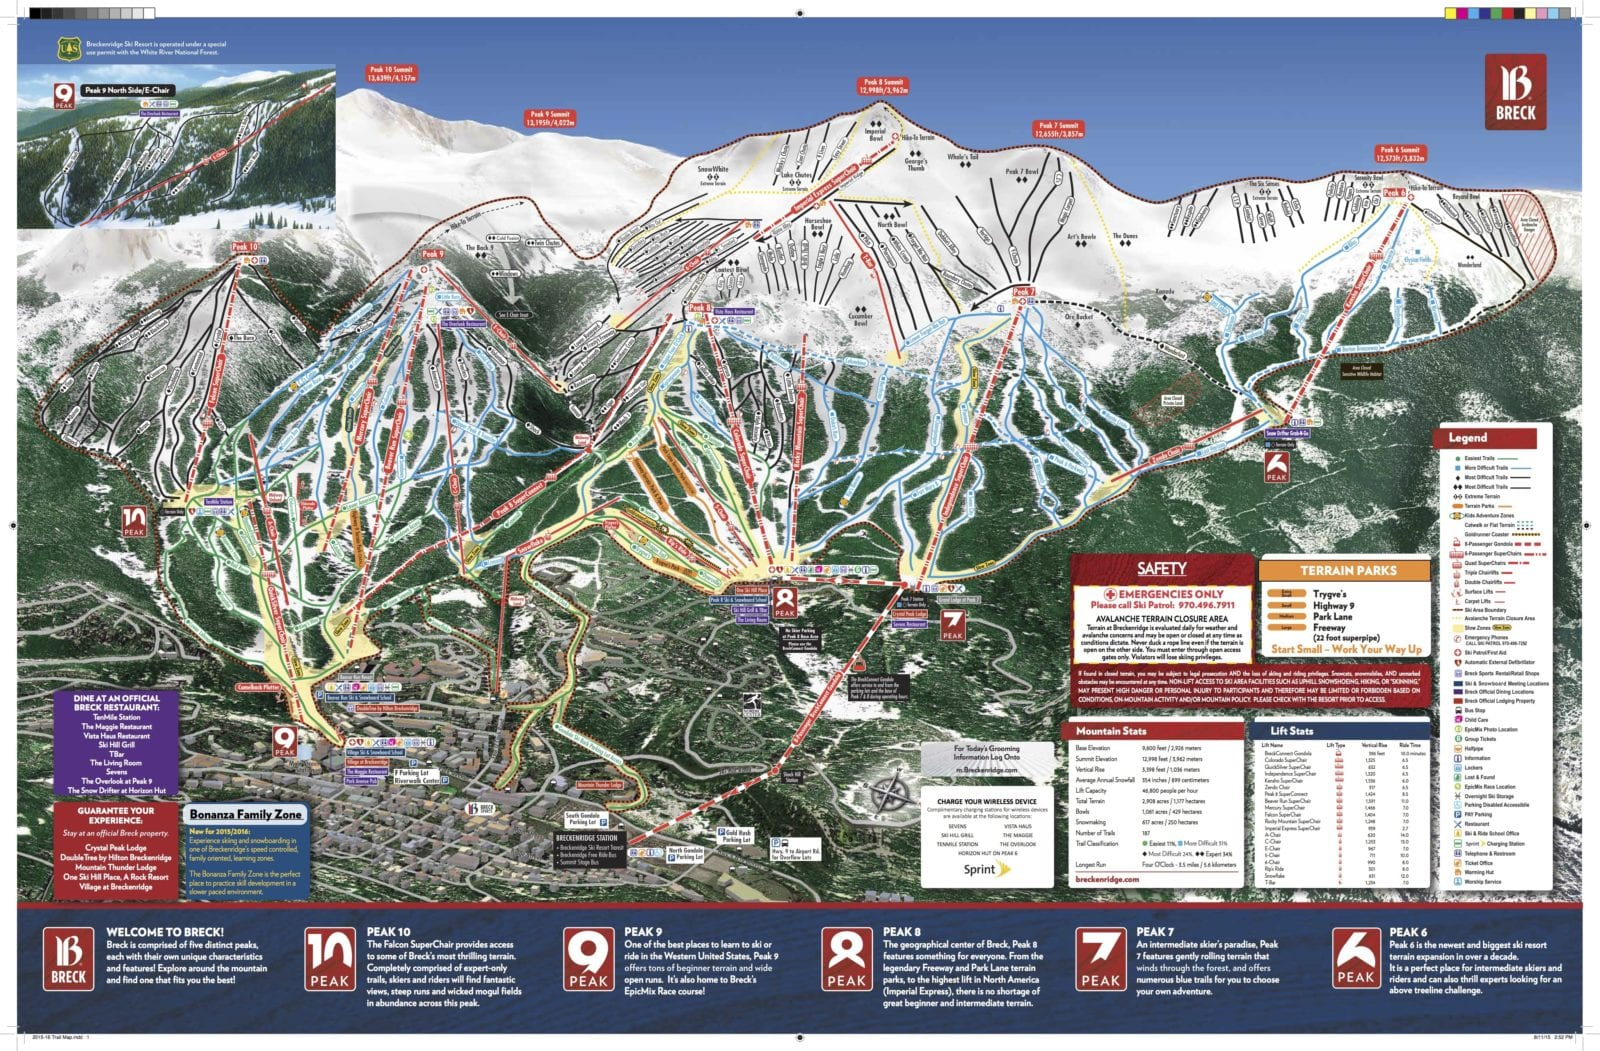 breckenridge ski resort – breckenridge, co | breck guide – terrain